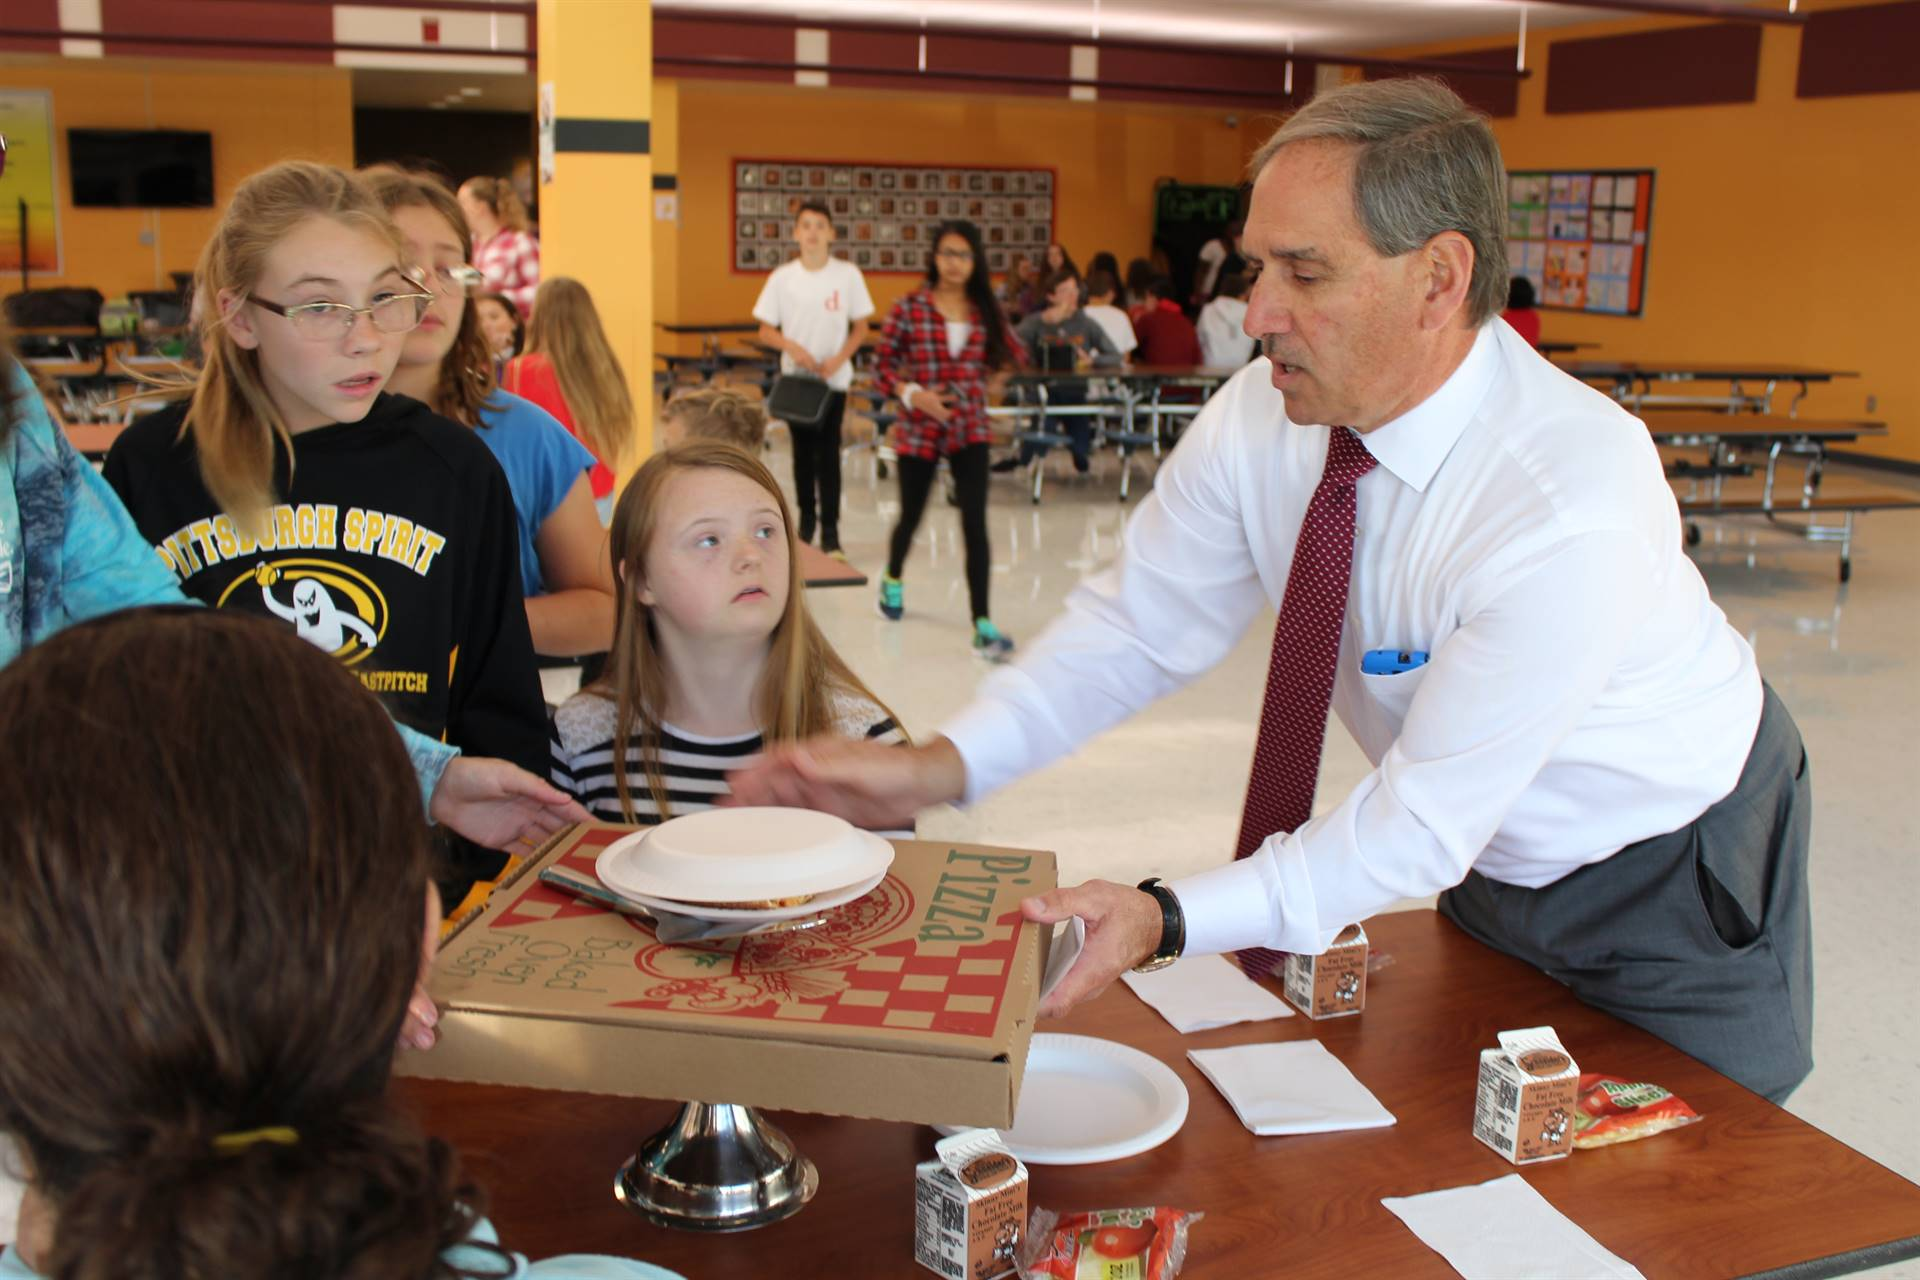 Food Service Director Joe Consolmagno delivers a pizza to the table